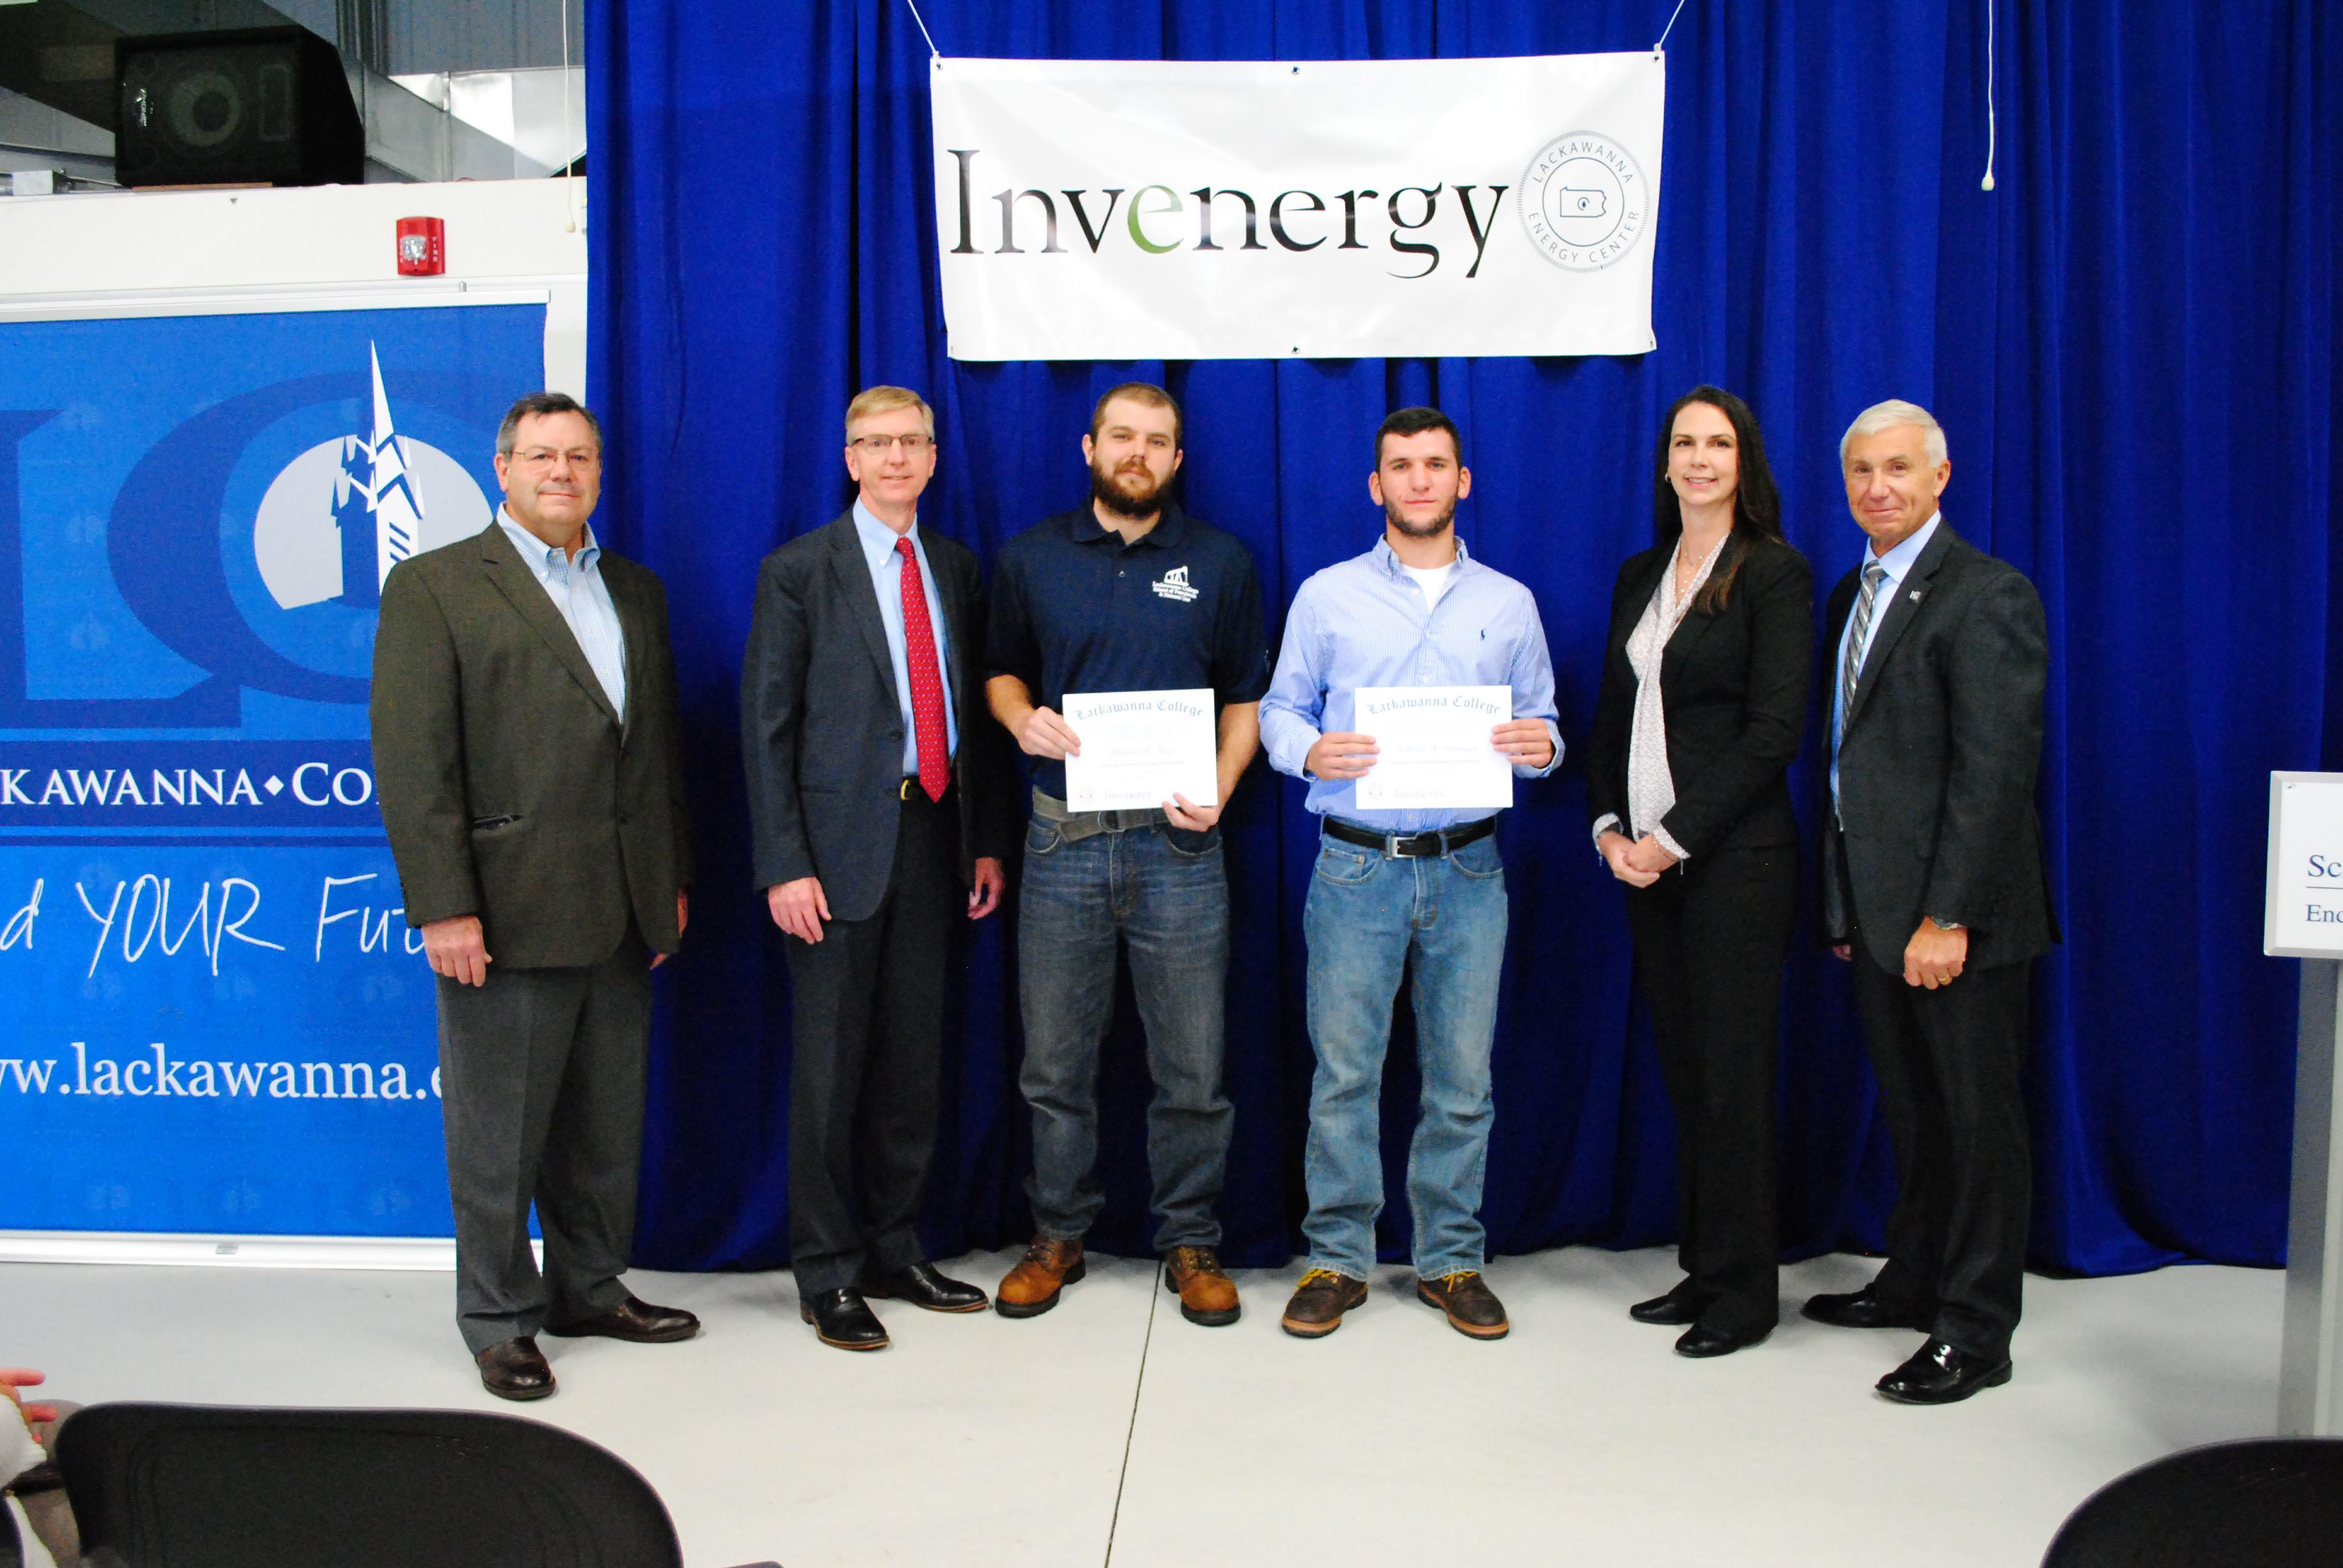 Lackawanna_Invenergy_Scholarship_8724.jp